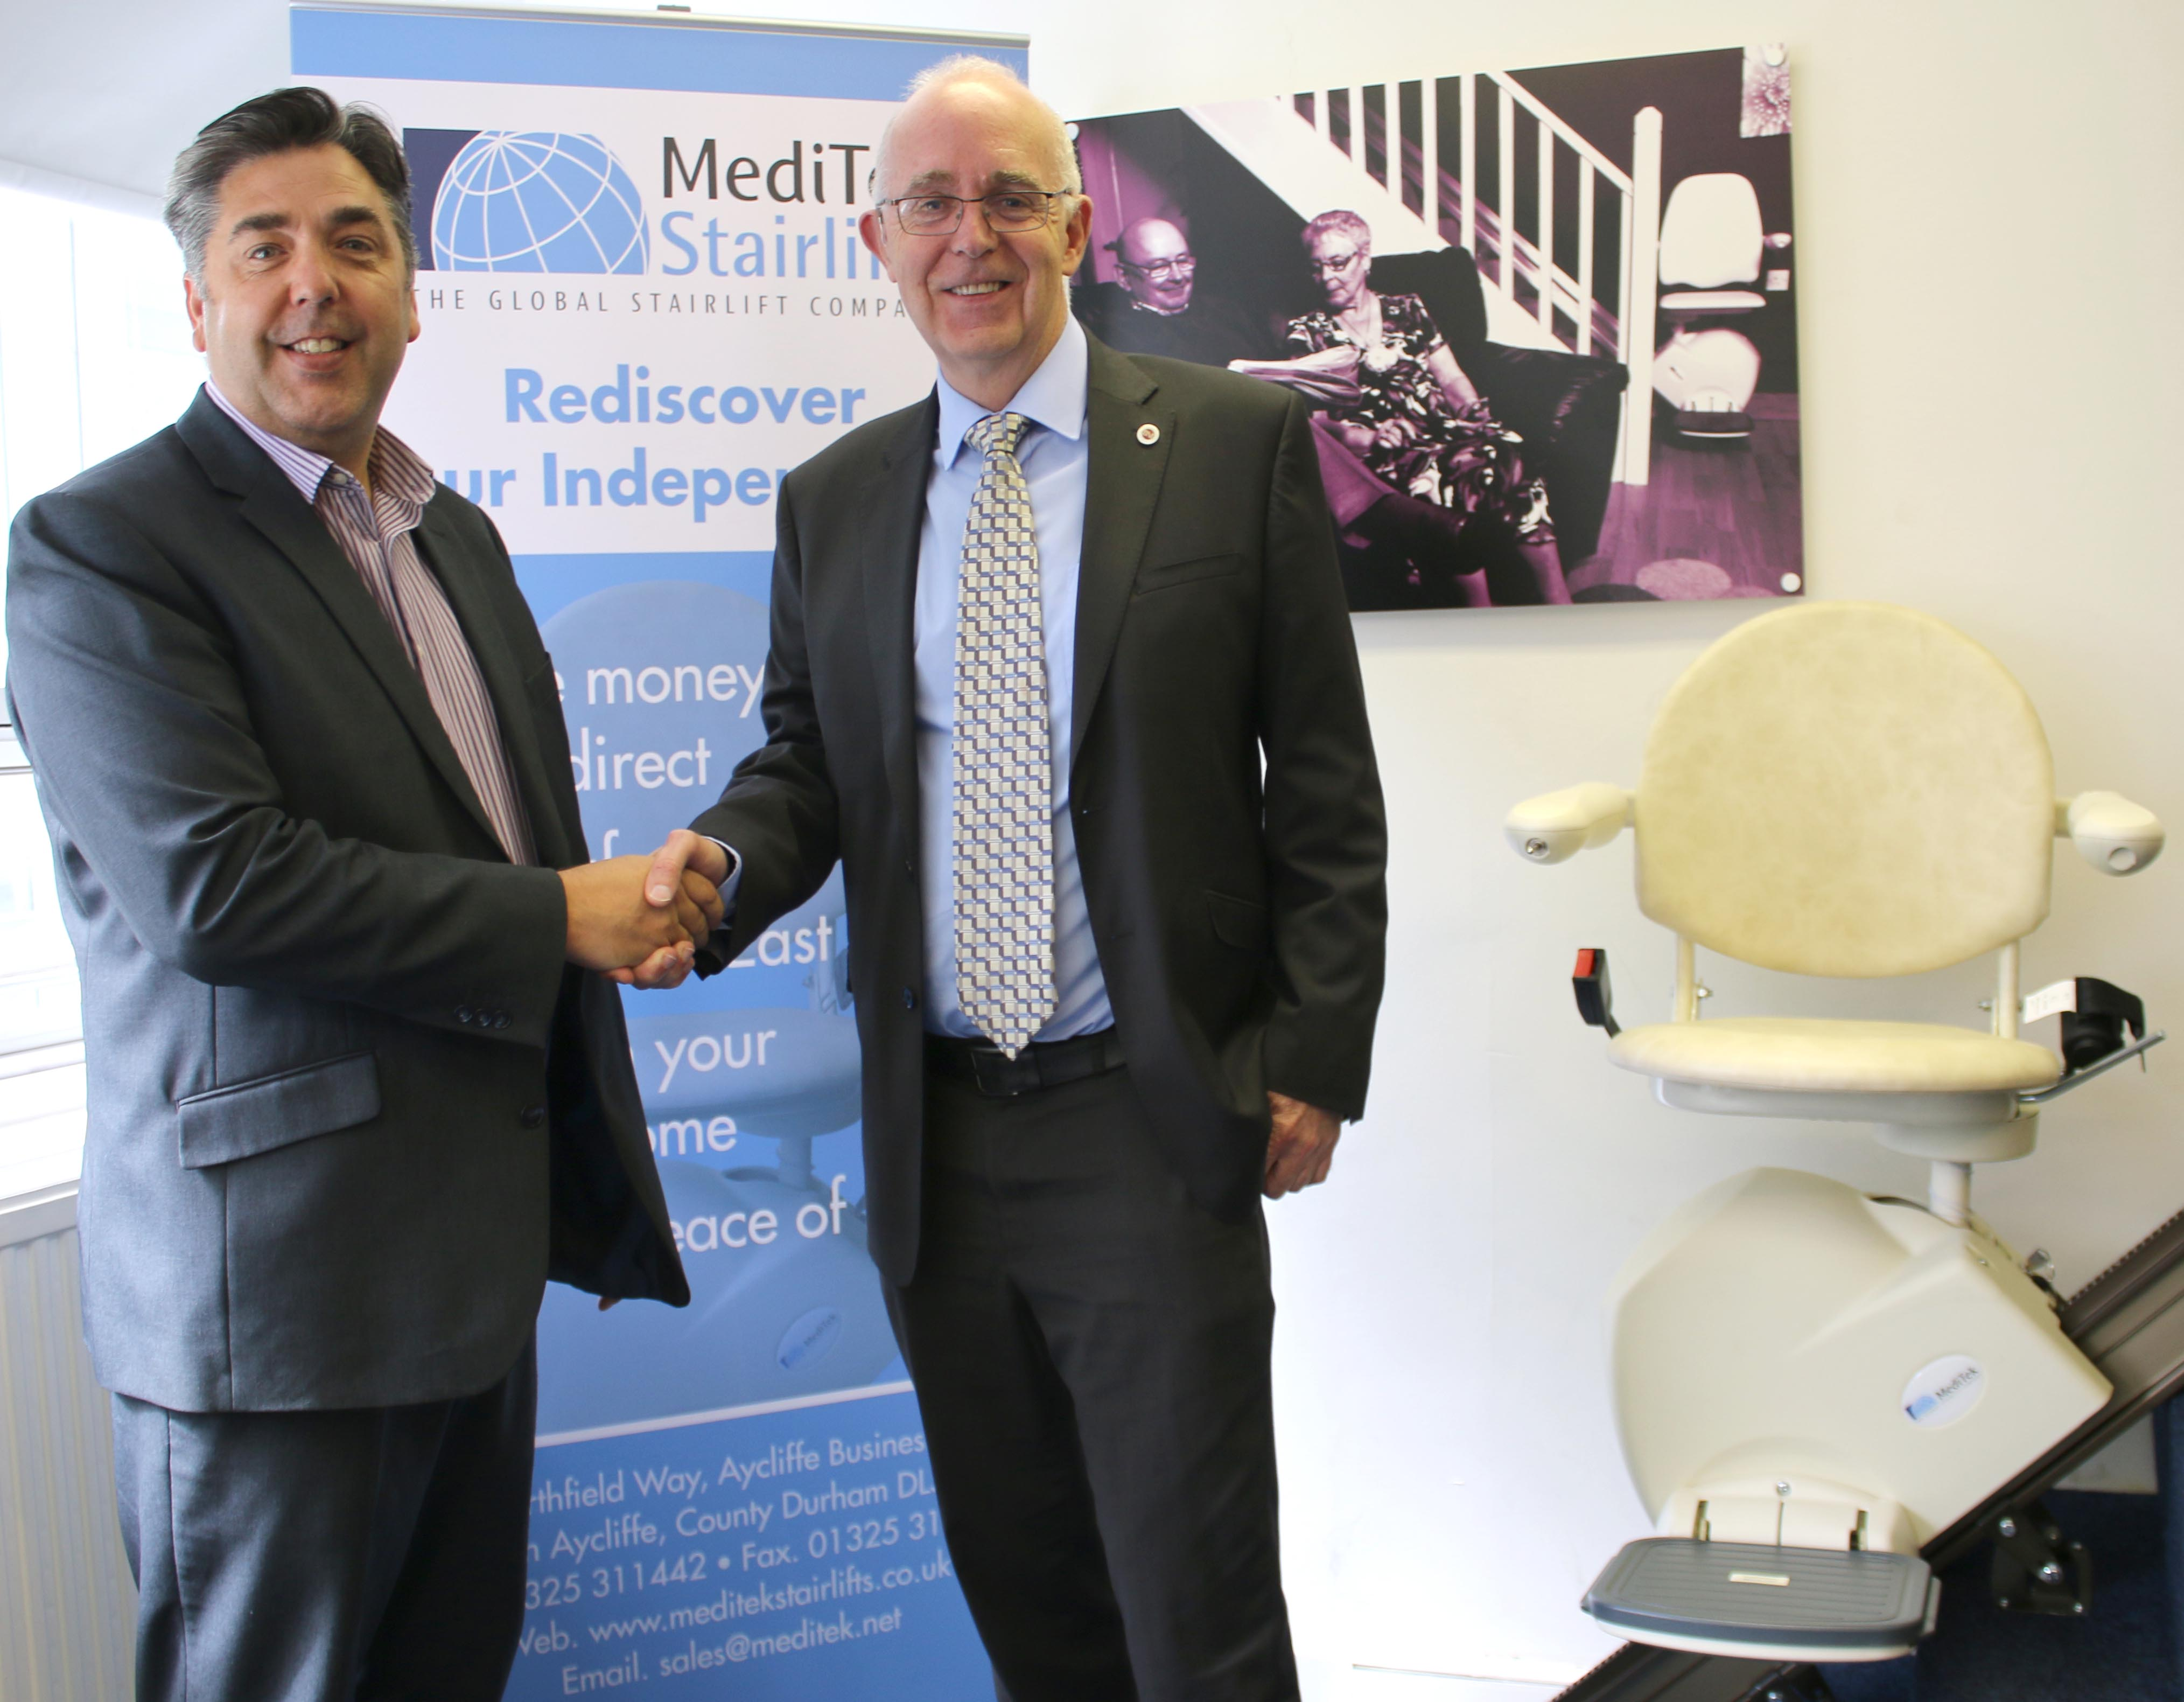 MEDITEK Stairlifts at Aycliffe Keep Moving up